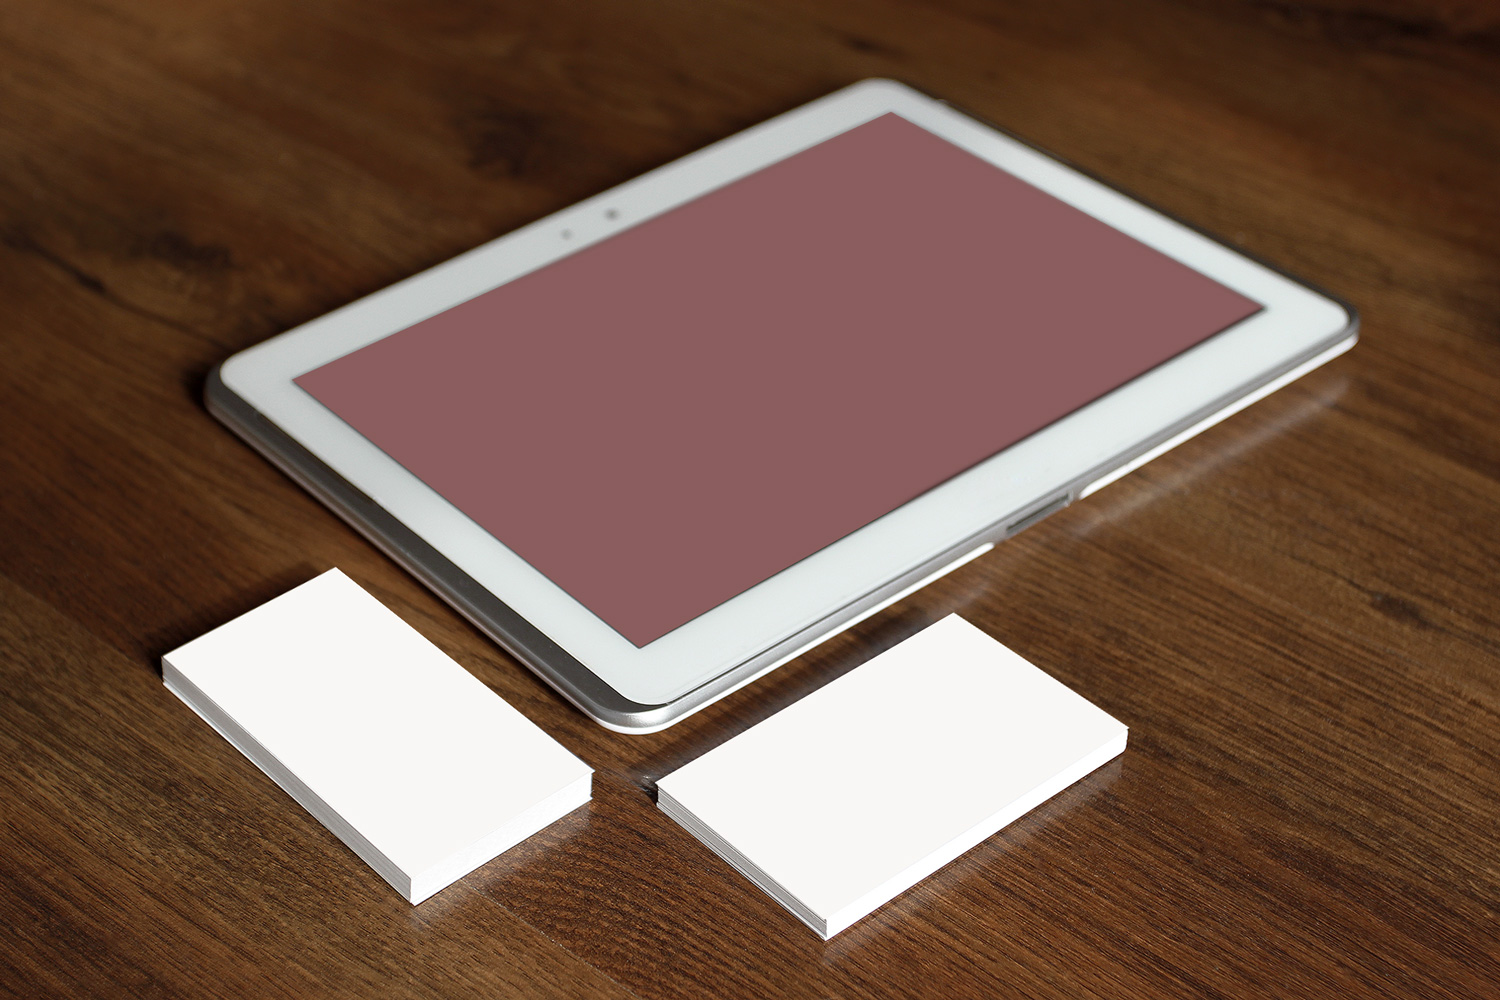 Business-Card-and-Tablet-Free-Mockup-06